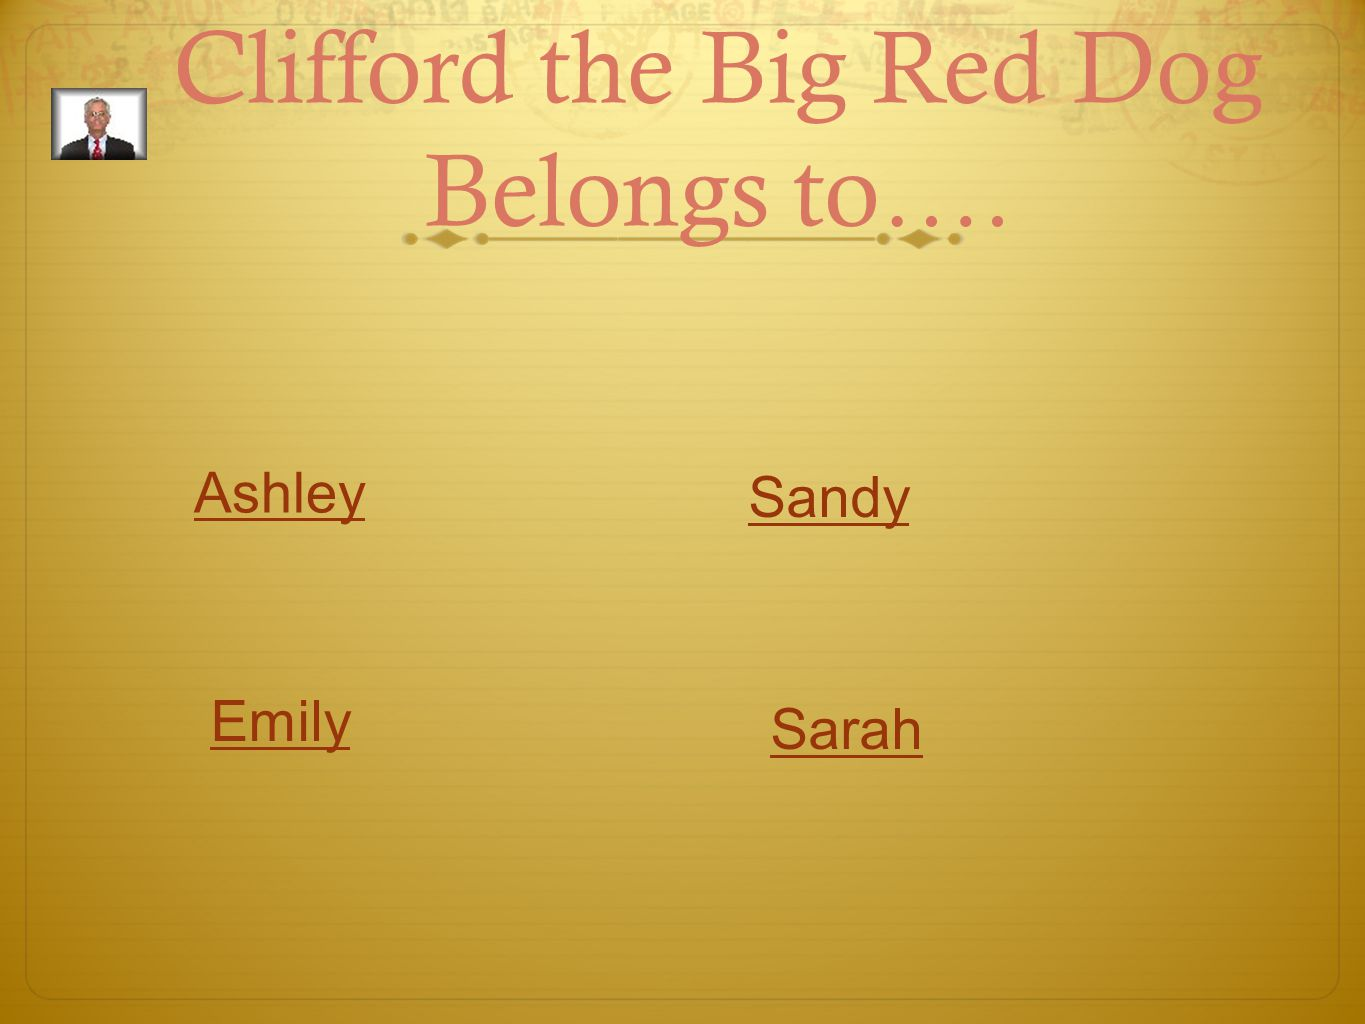 Clifford the Big Red Dog Belongs to…. Ashley Emily Sandy Sarah